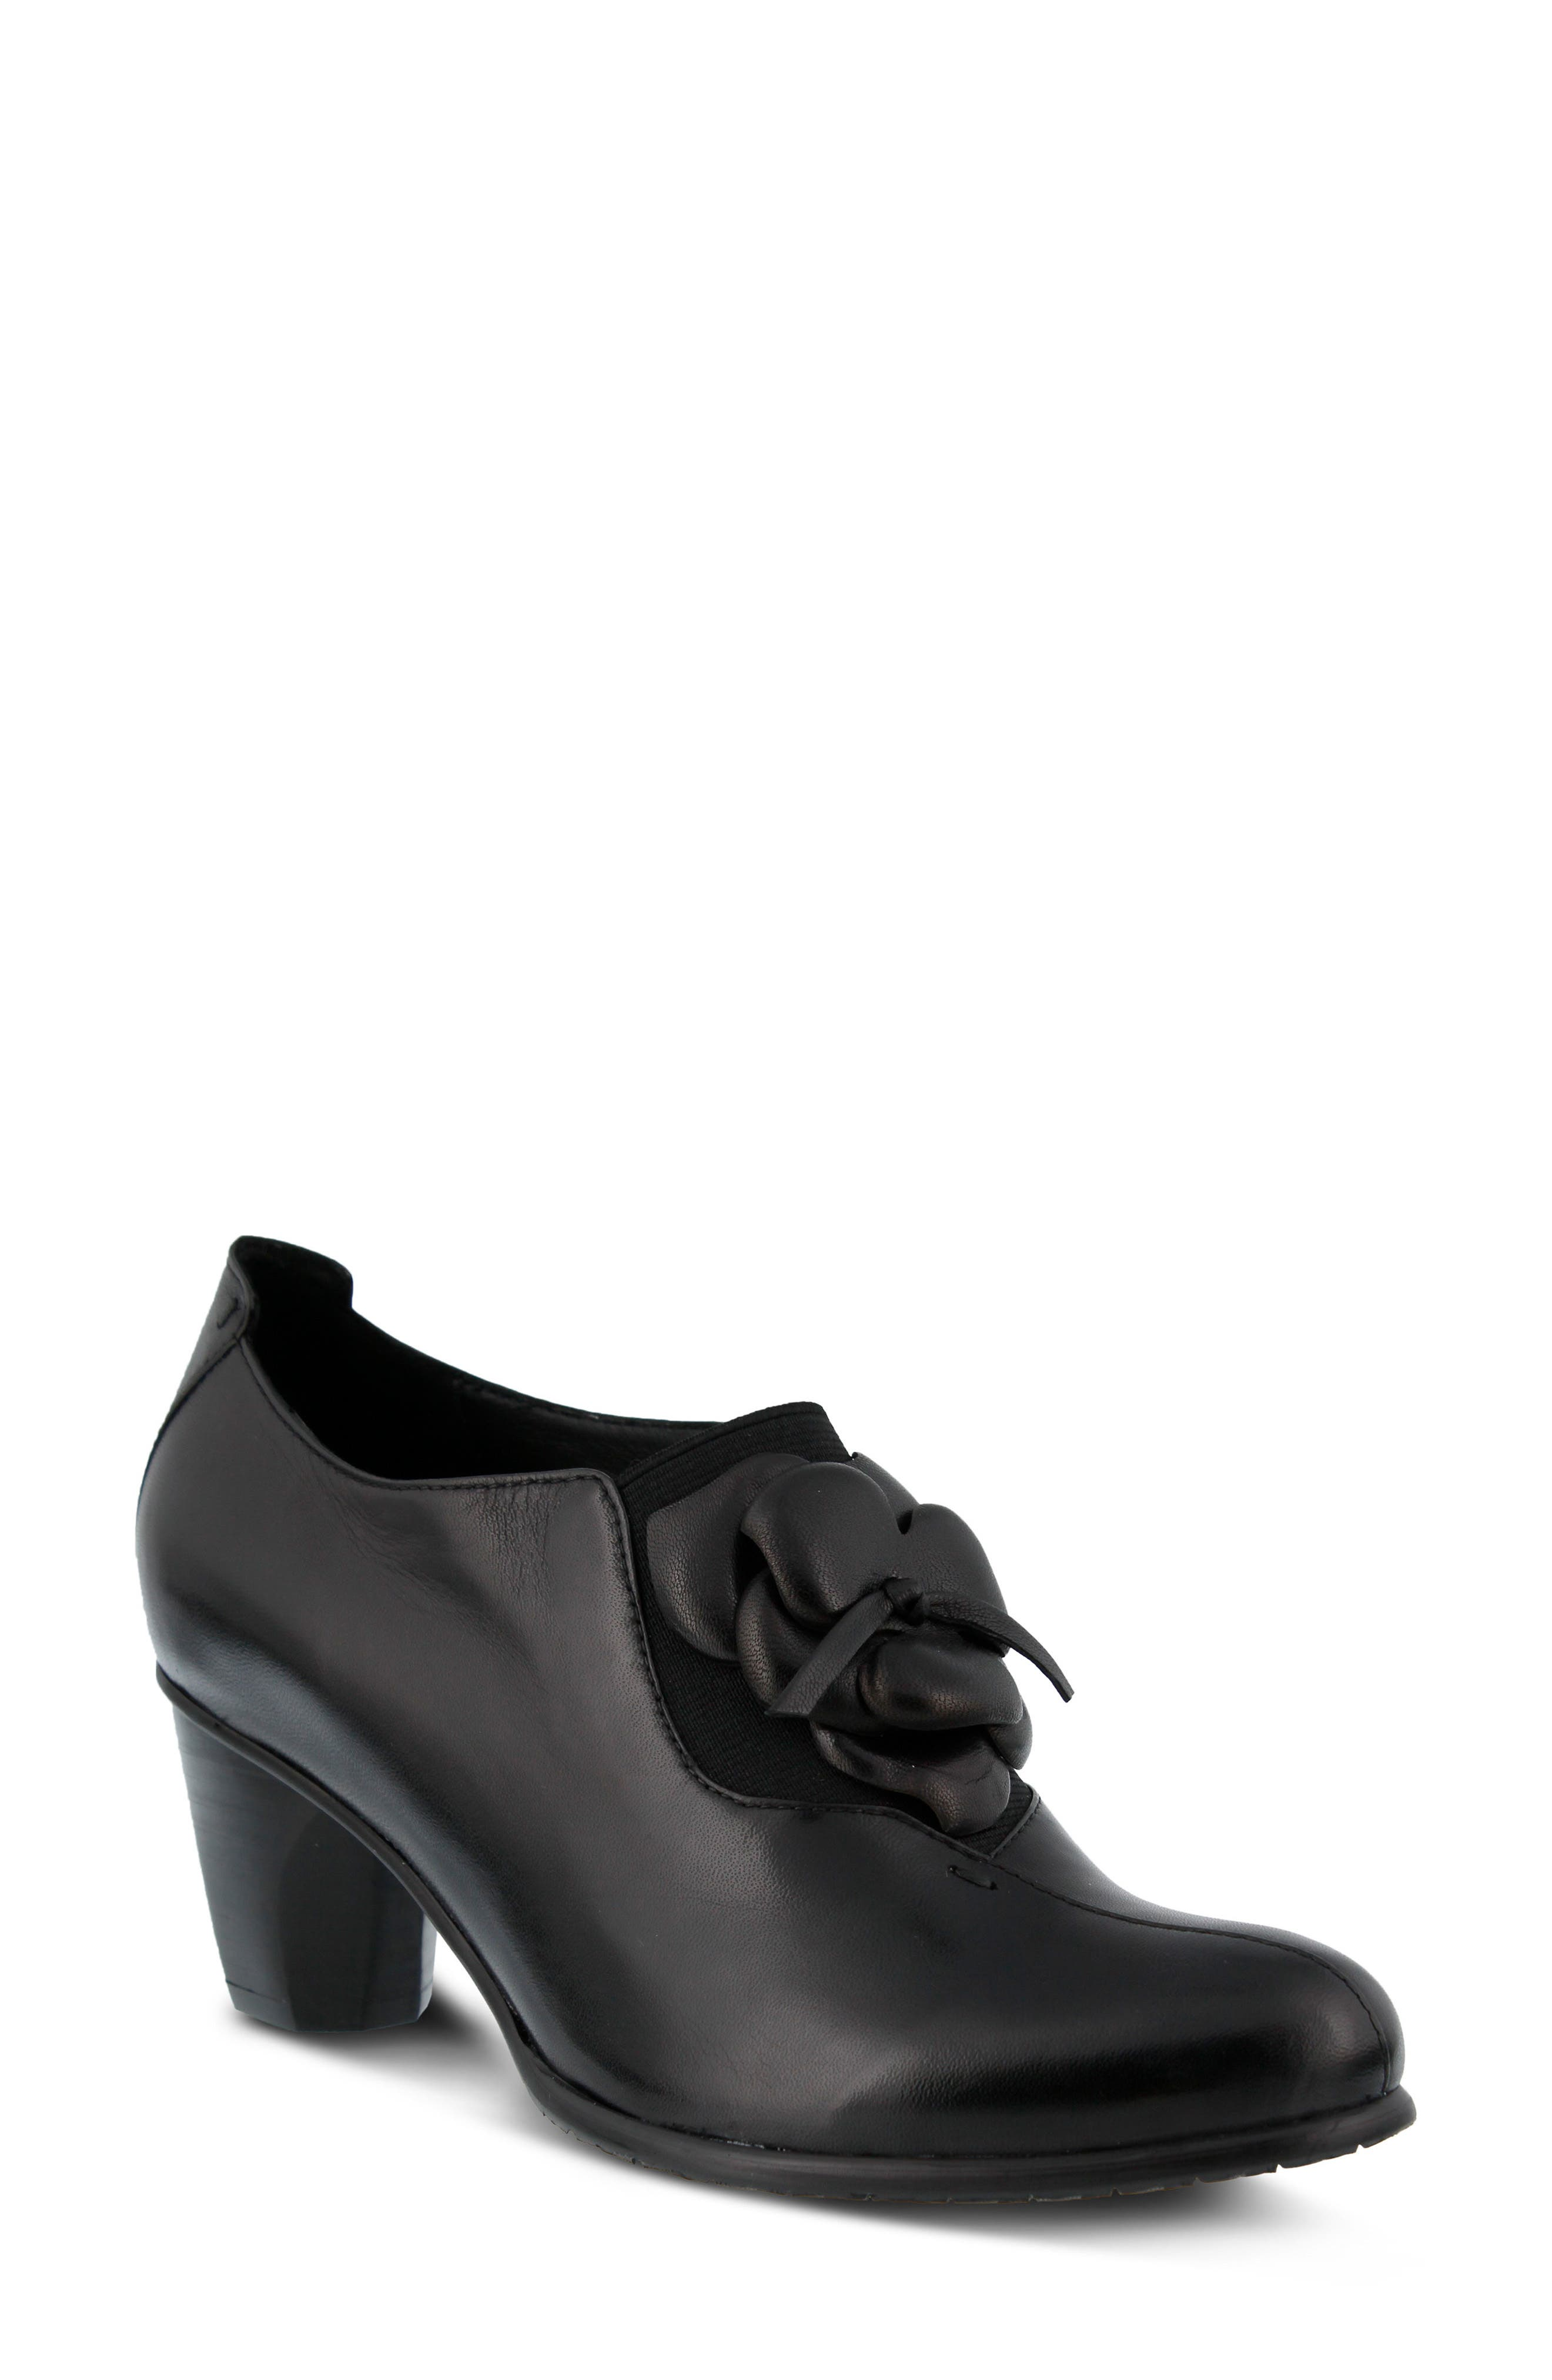 Alternate Image 1 Selected - Spring Step Evelina Pump (Women)